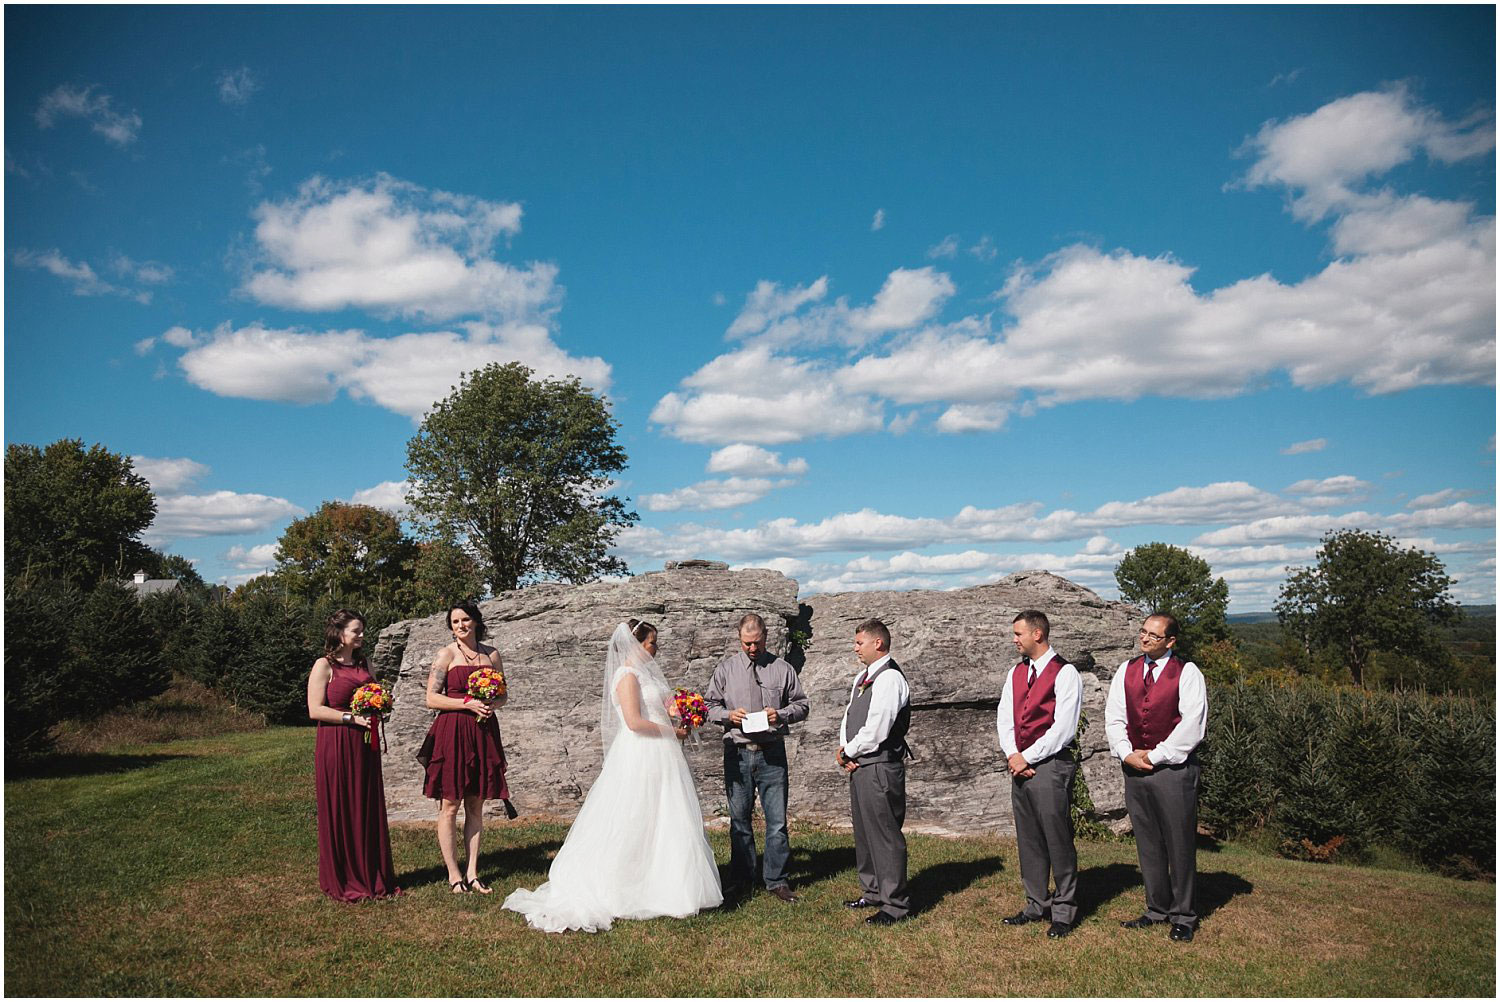 allen-hill-farm-wedding-brooklyn-connecticut-nicole-chaput-photography-018.jpg